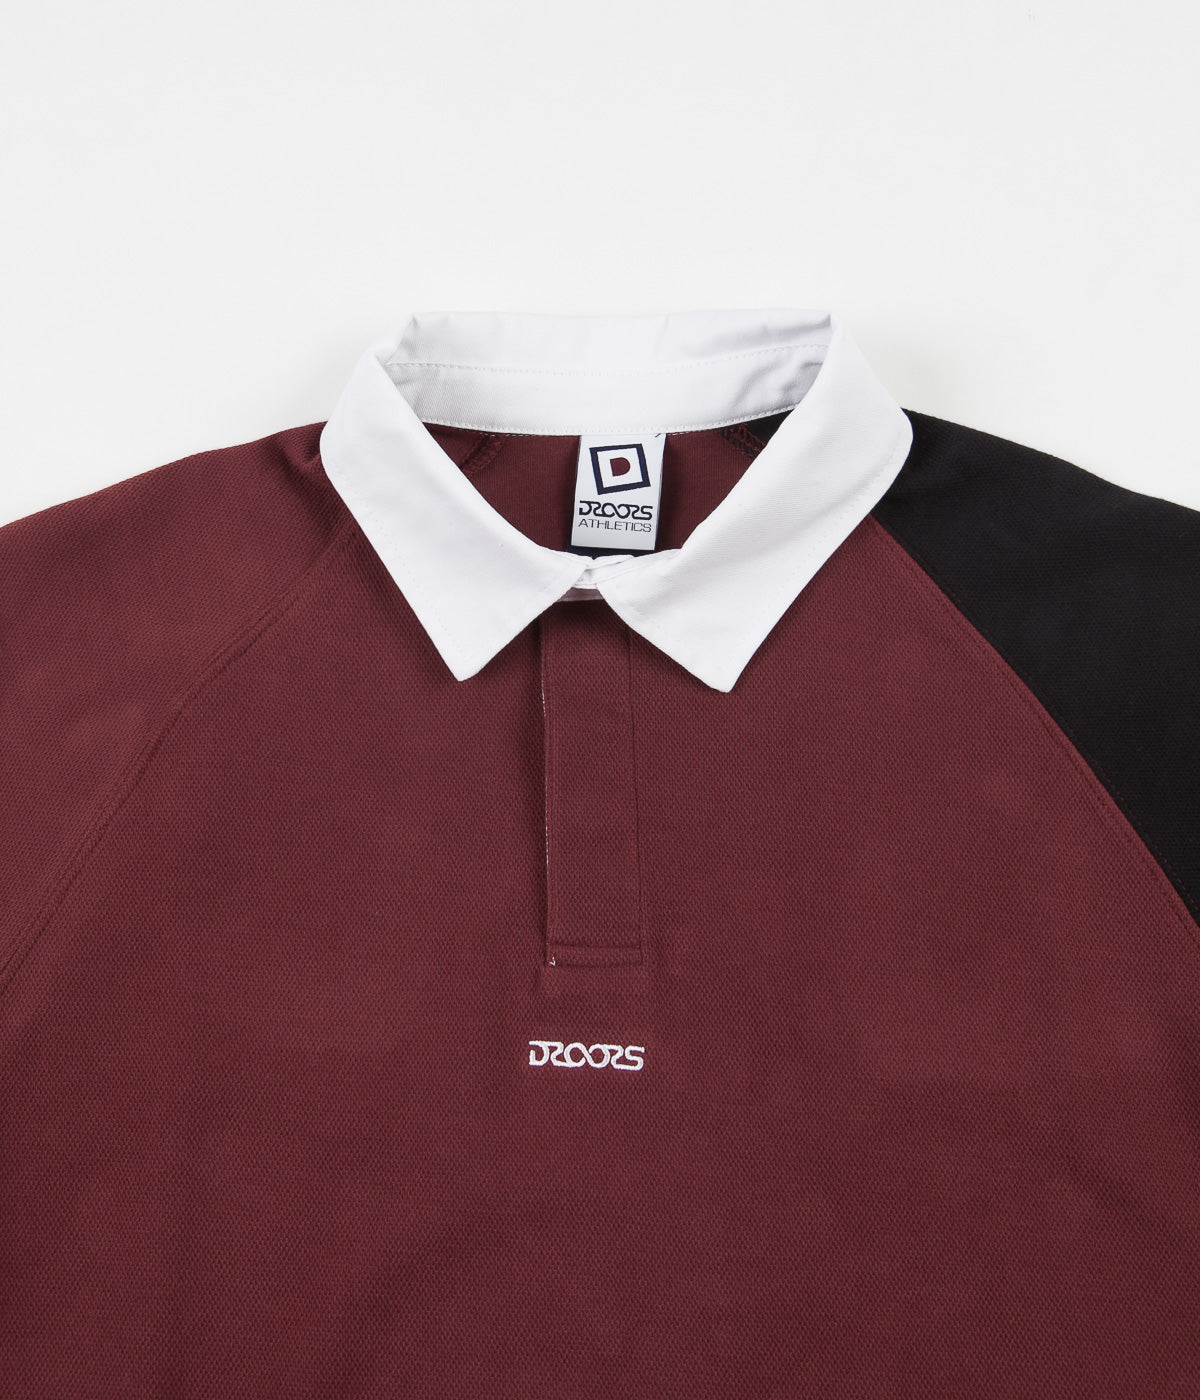 Droors Saxon Rugby Shirt - Wino